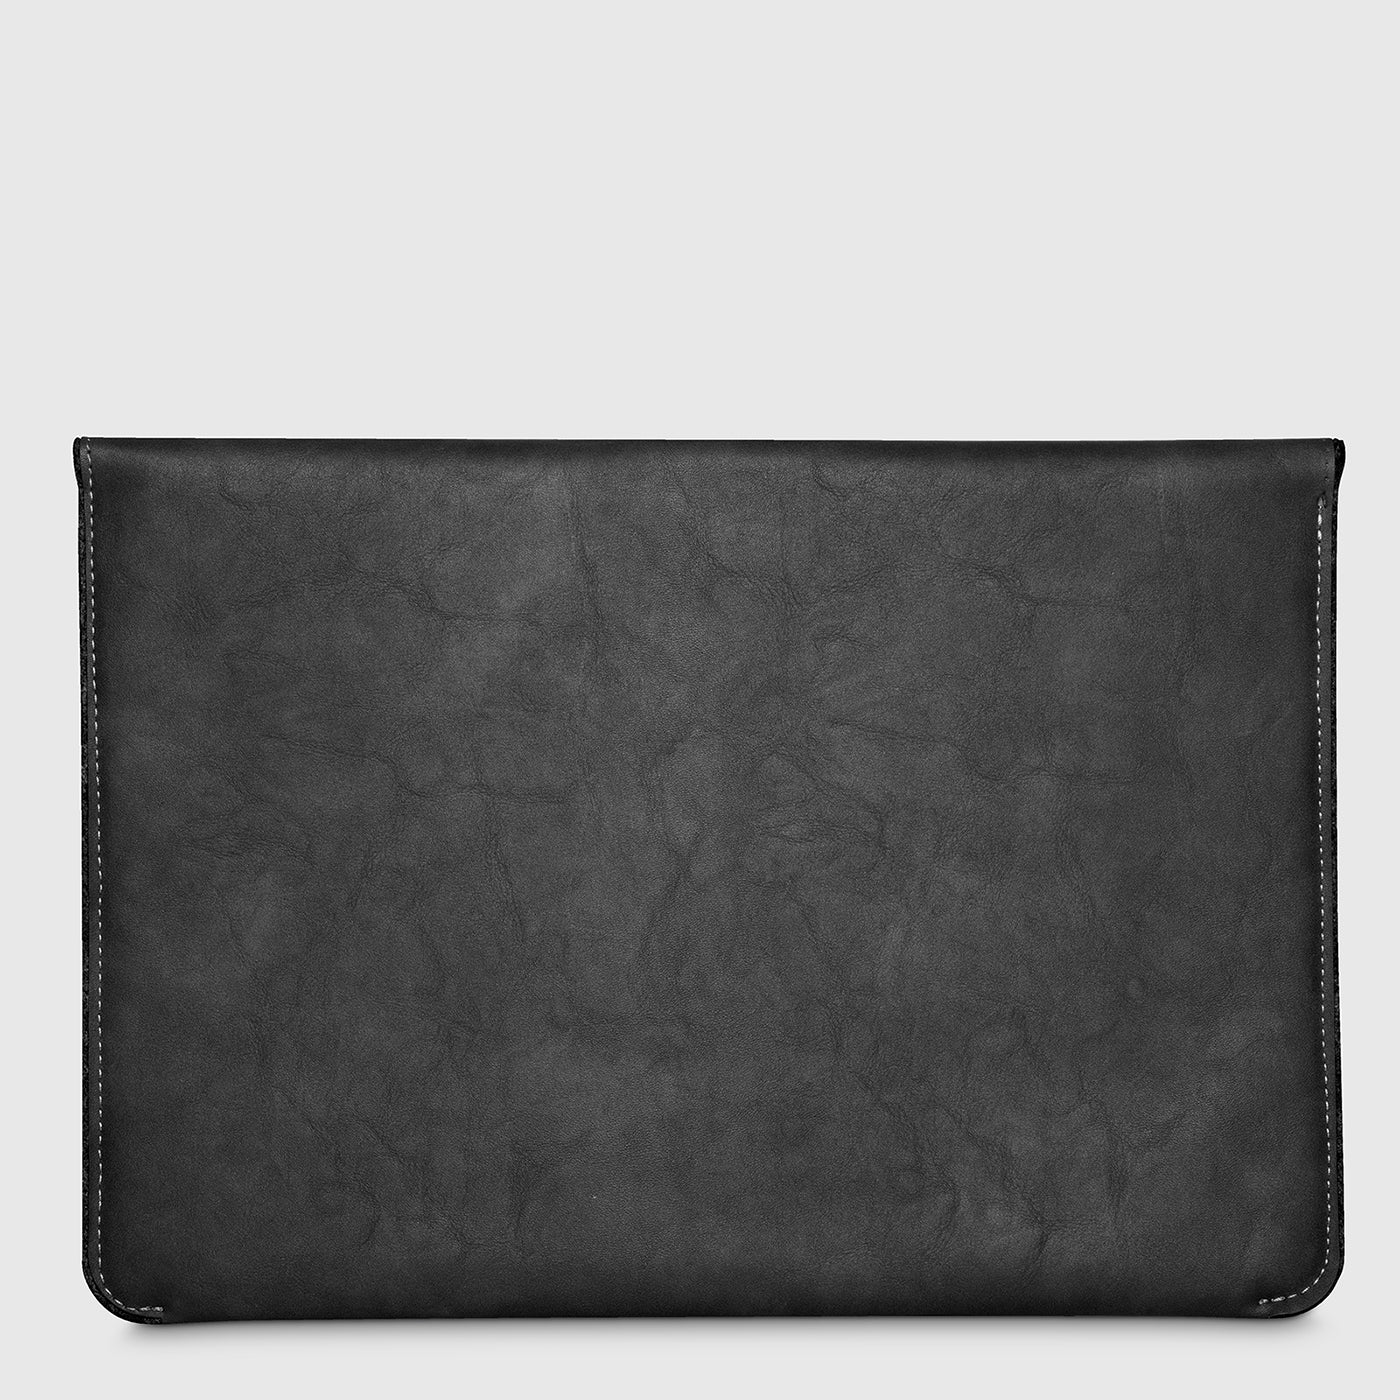 Sleeve Viena Pro Black for Apple MacBook 2018